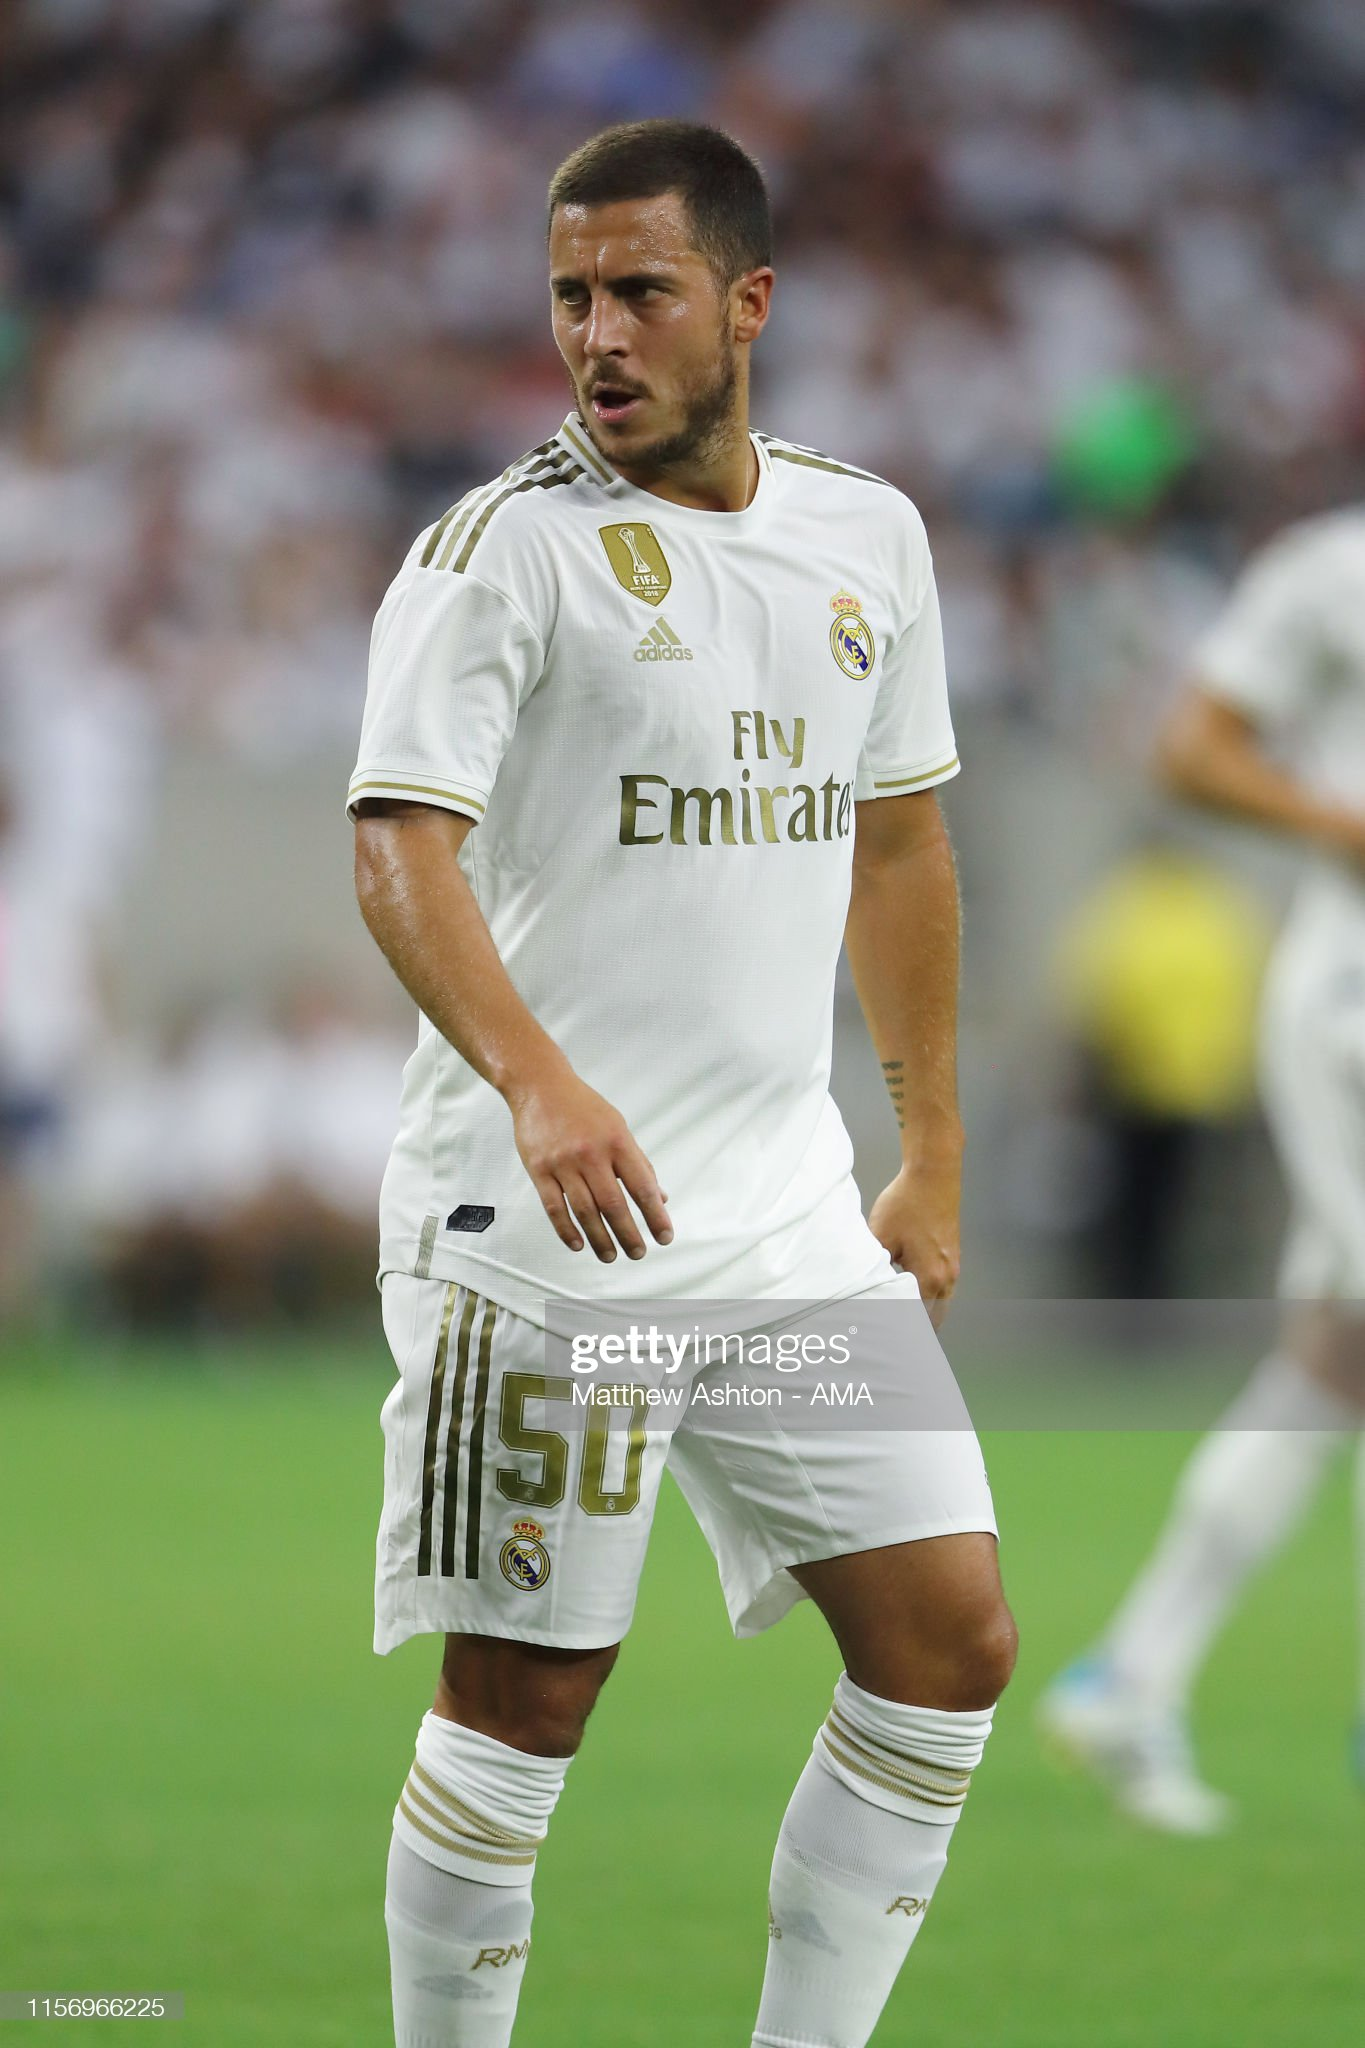 FC Bayern v Real Madrid - 2019 International Champions Cup : News Photo